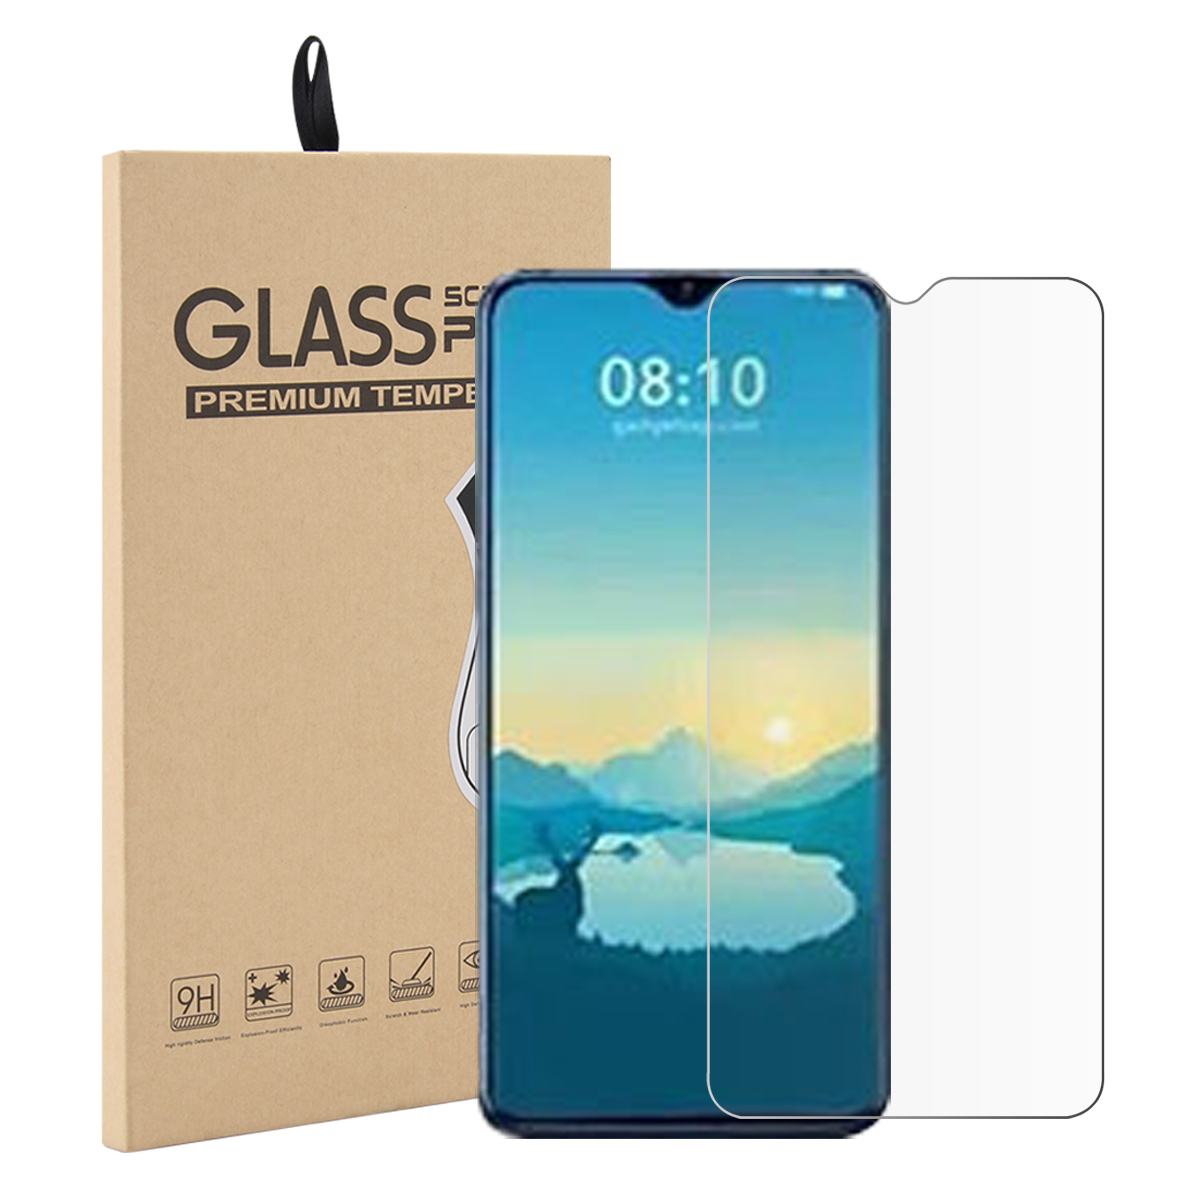 For Xiaomi Mi 9 Mi 9 SE Tempered Glass Anti-Scratch Screen Protector For Xiaomi Mi 9 Mi9 SE Protective Film With Paper Package